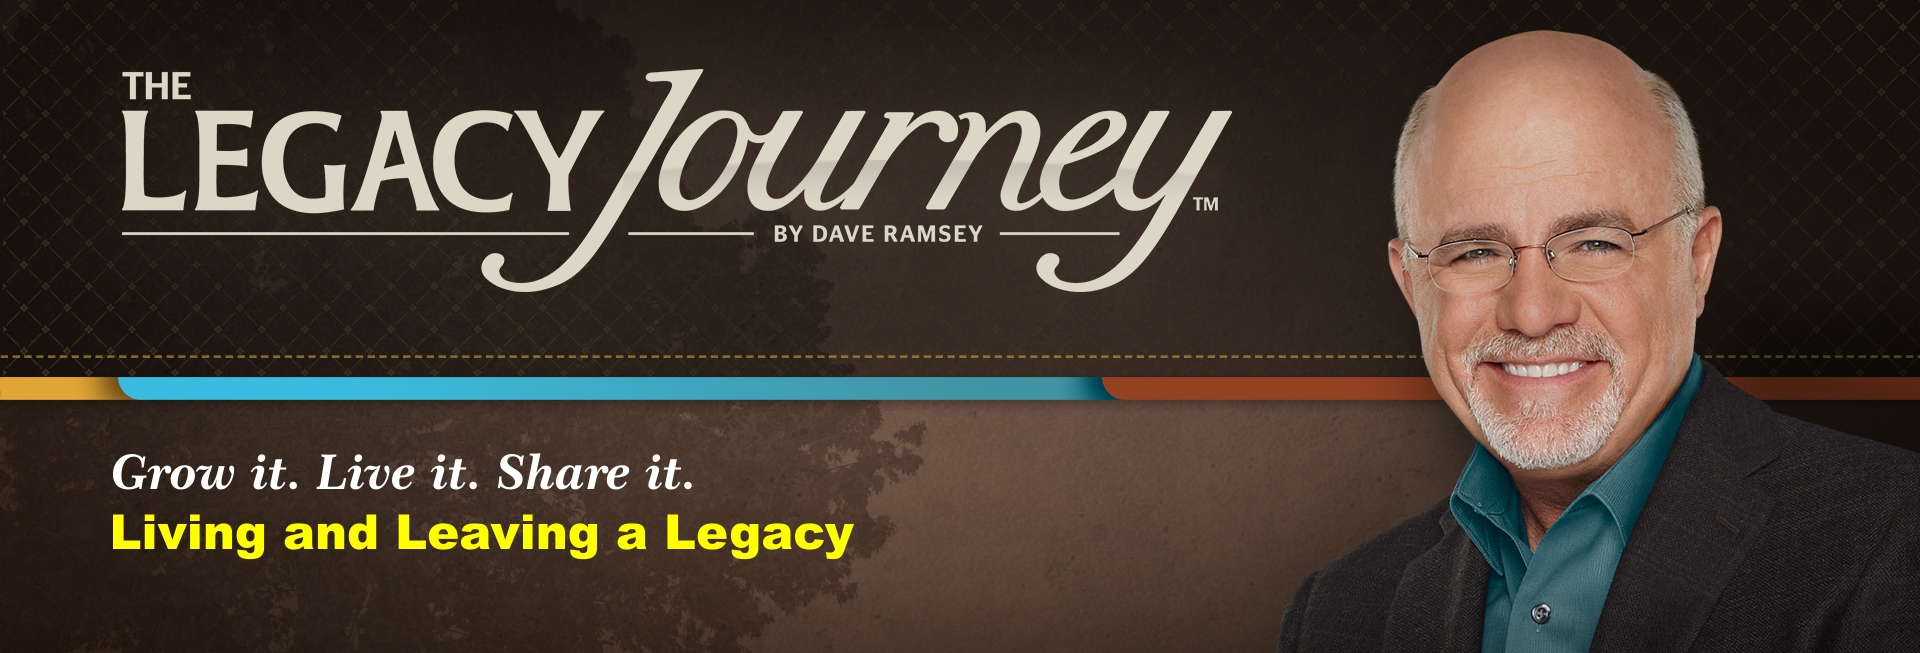 The Legacy Journey - Financial seminar starting February 25th!